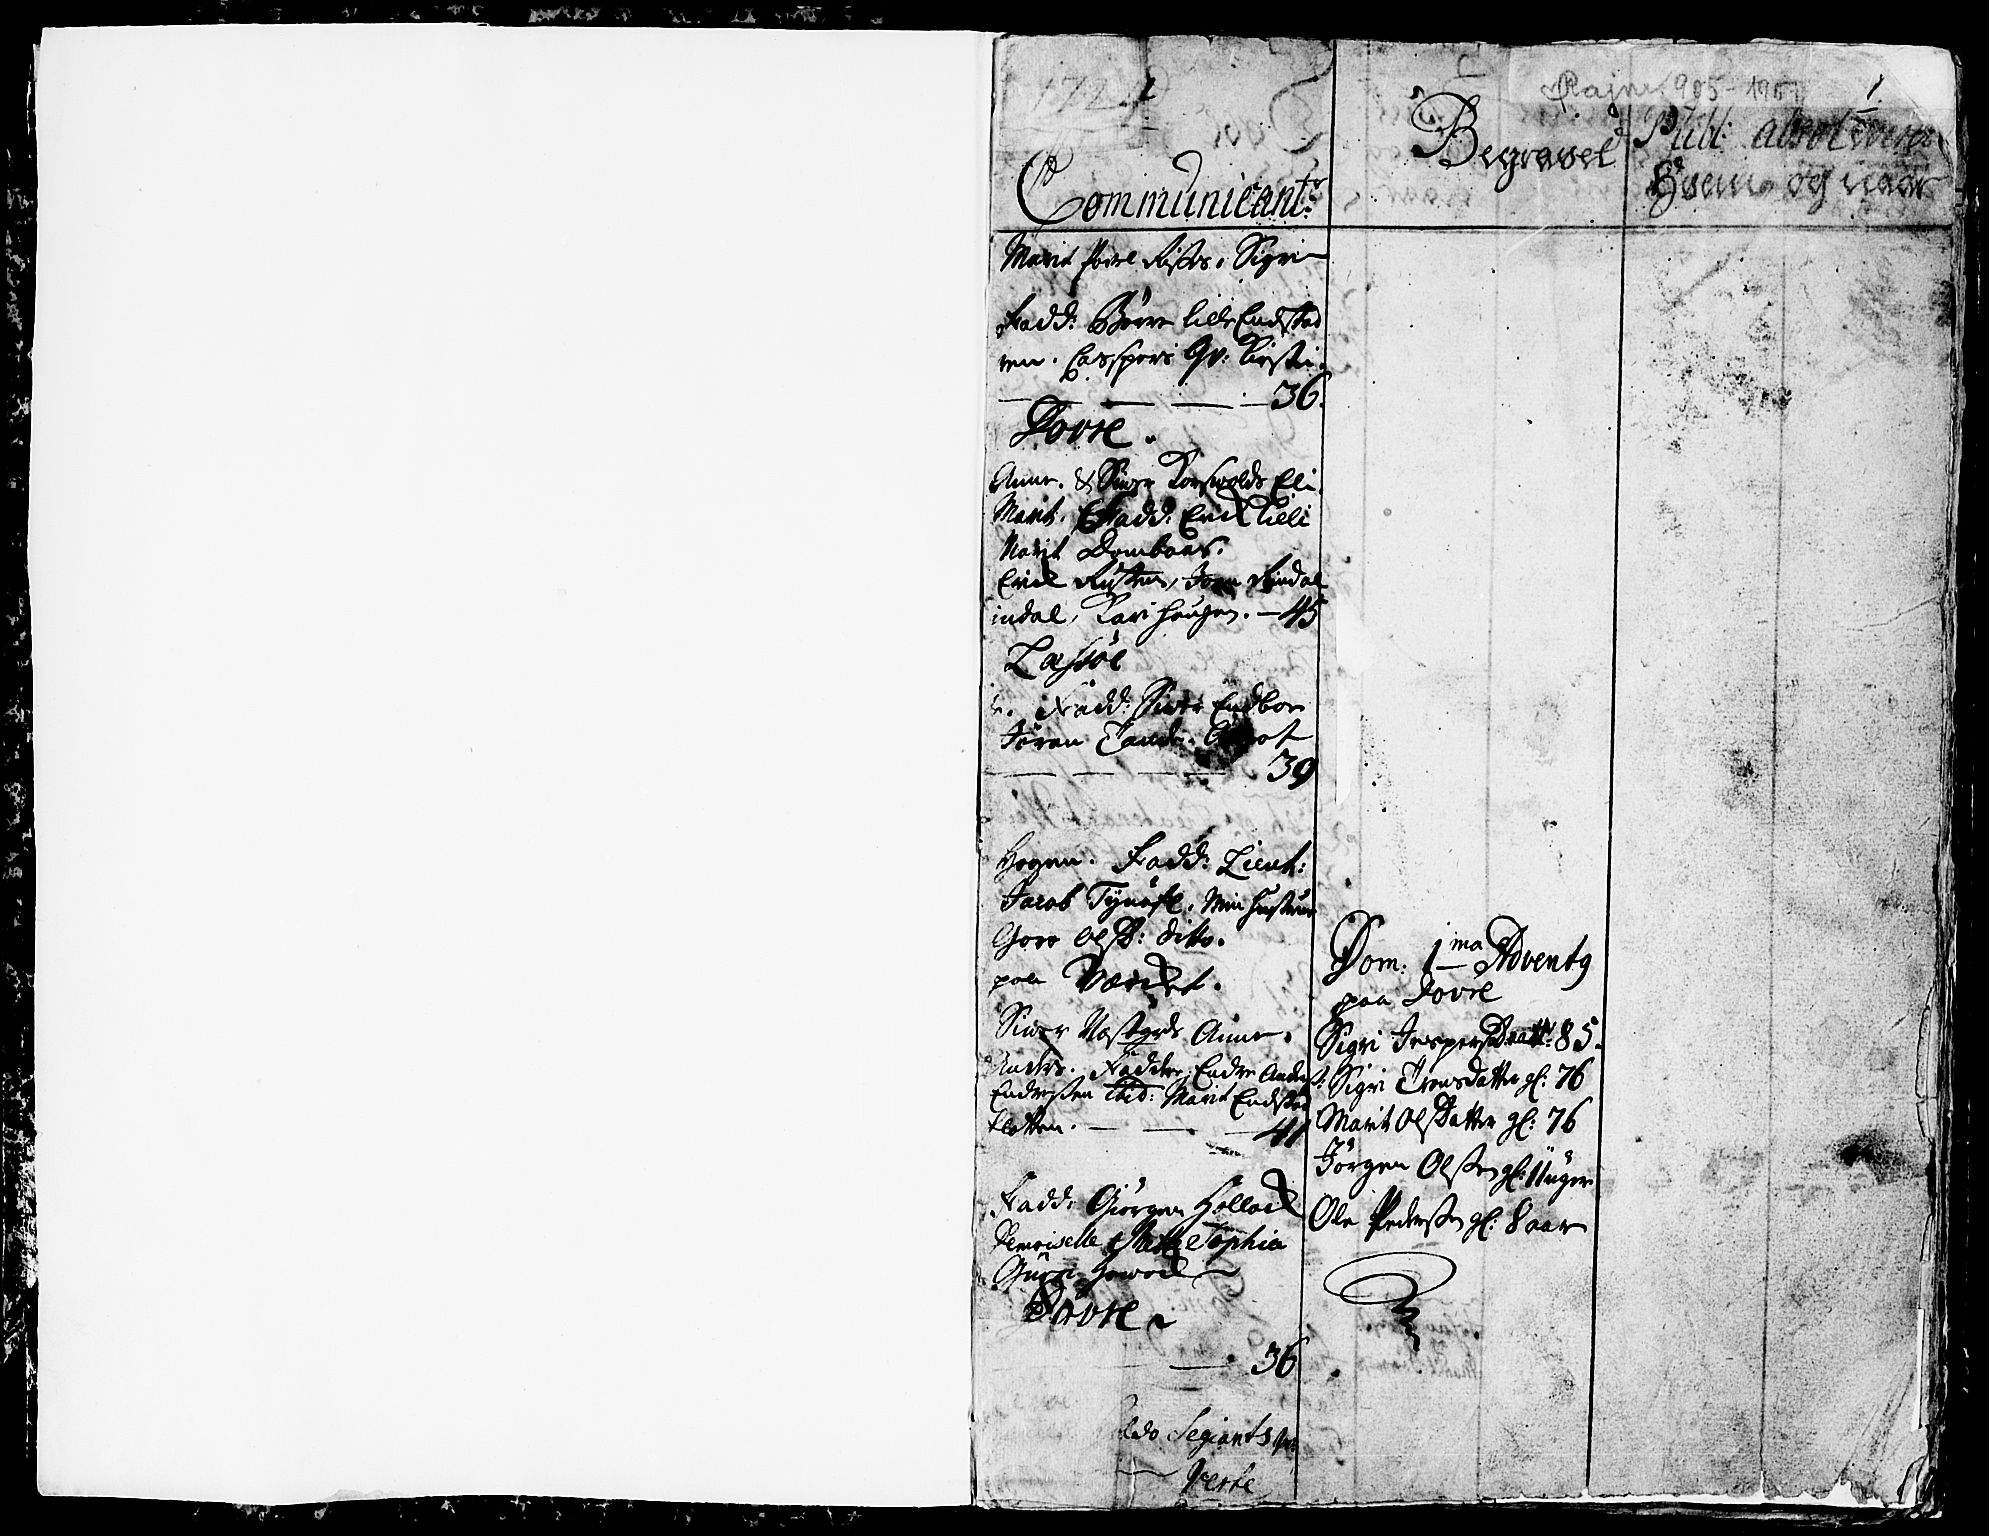 SAH, Lesja prestekontor, Parish register (official) no. 1, 1724-1731, p. 1